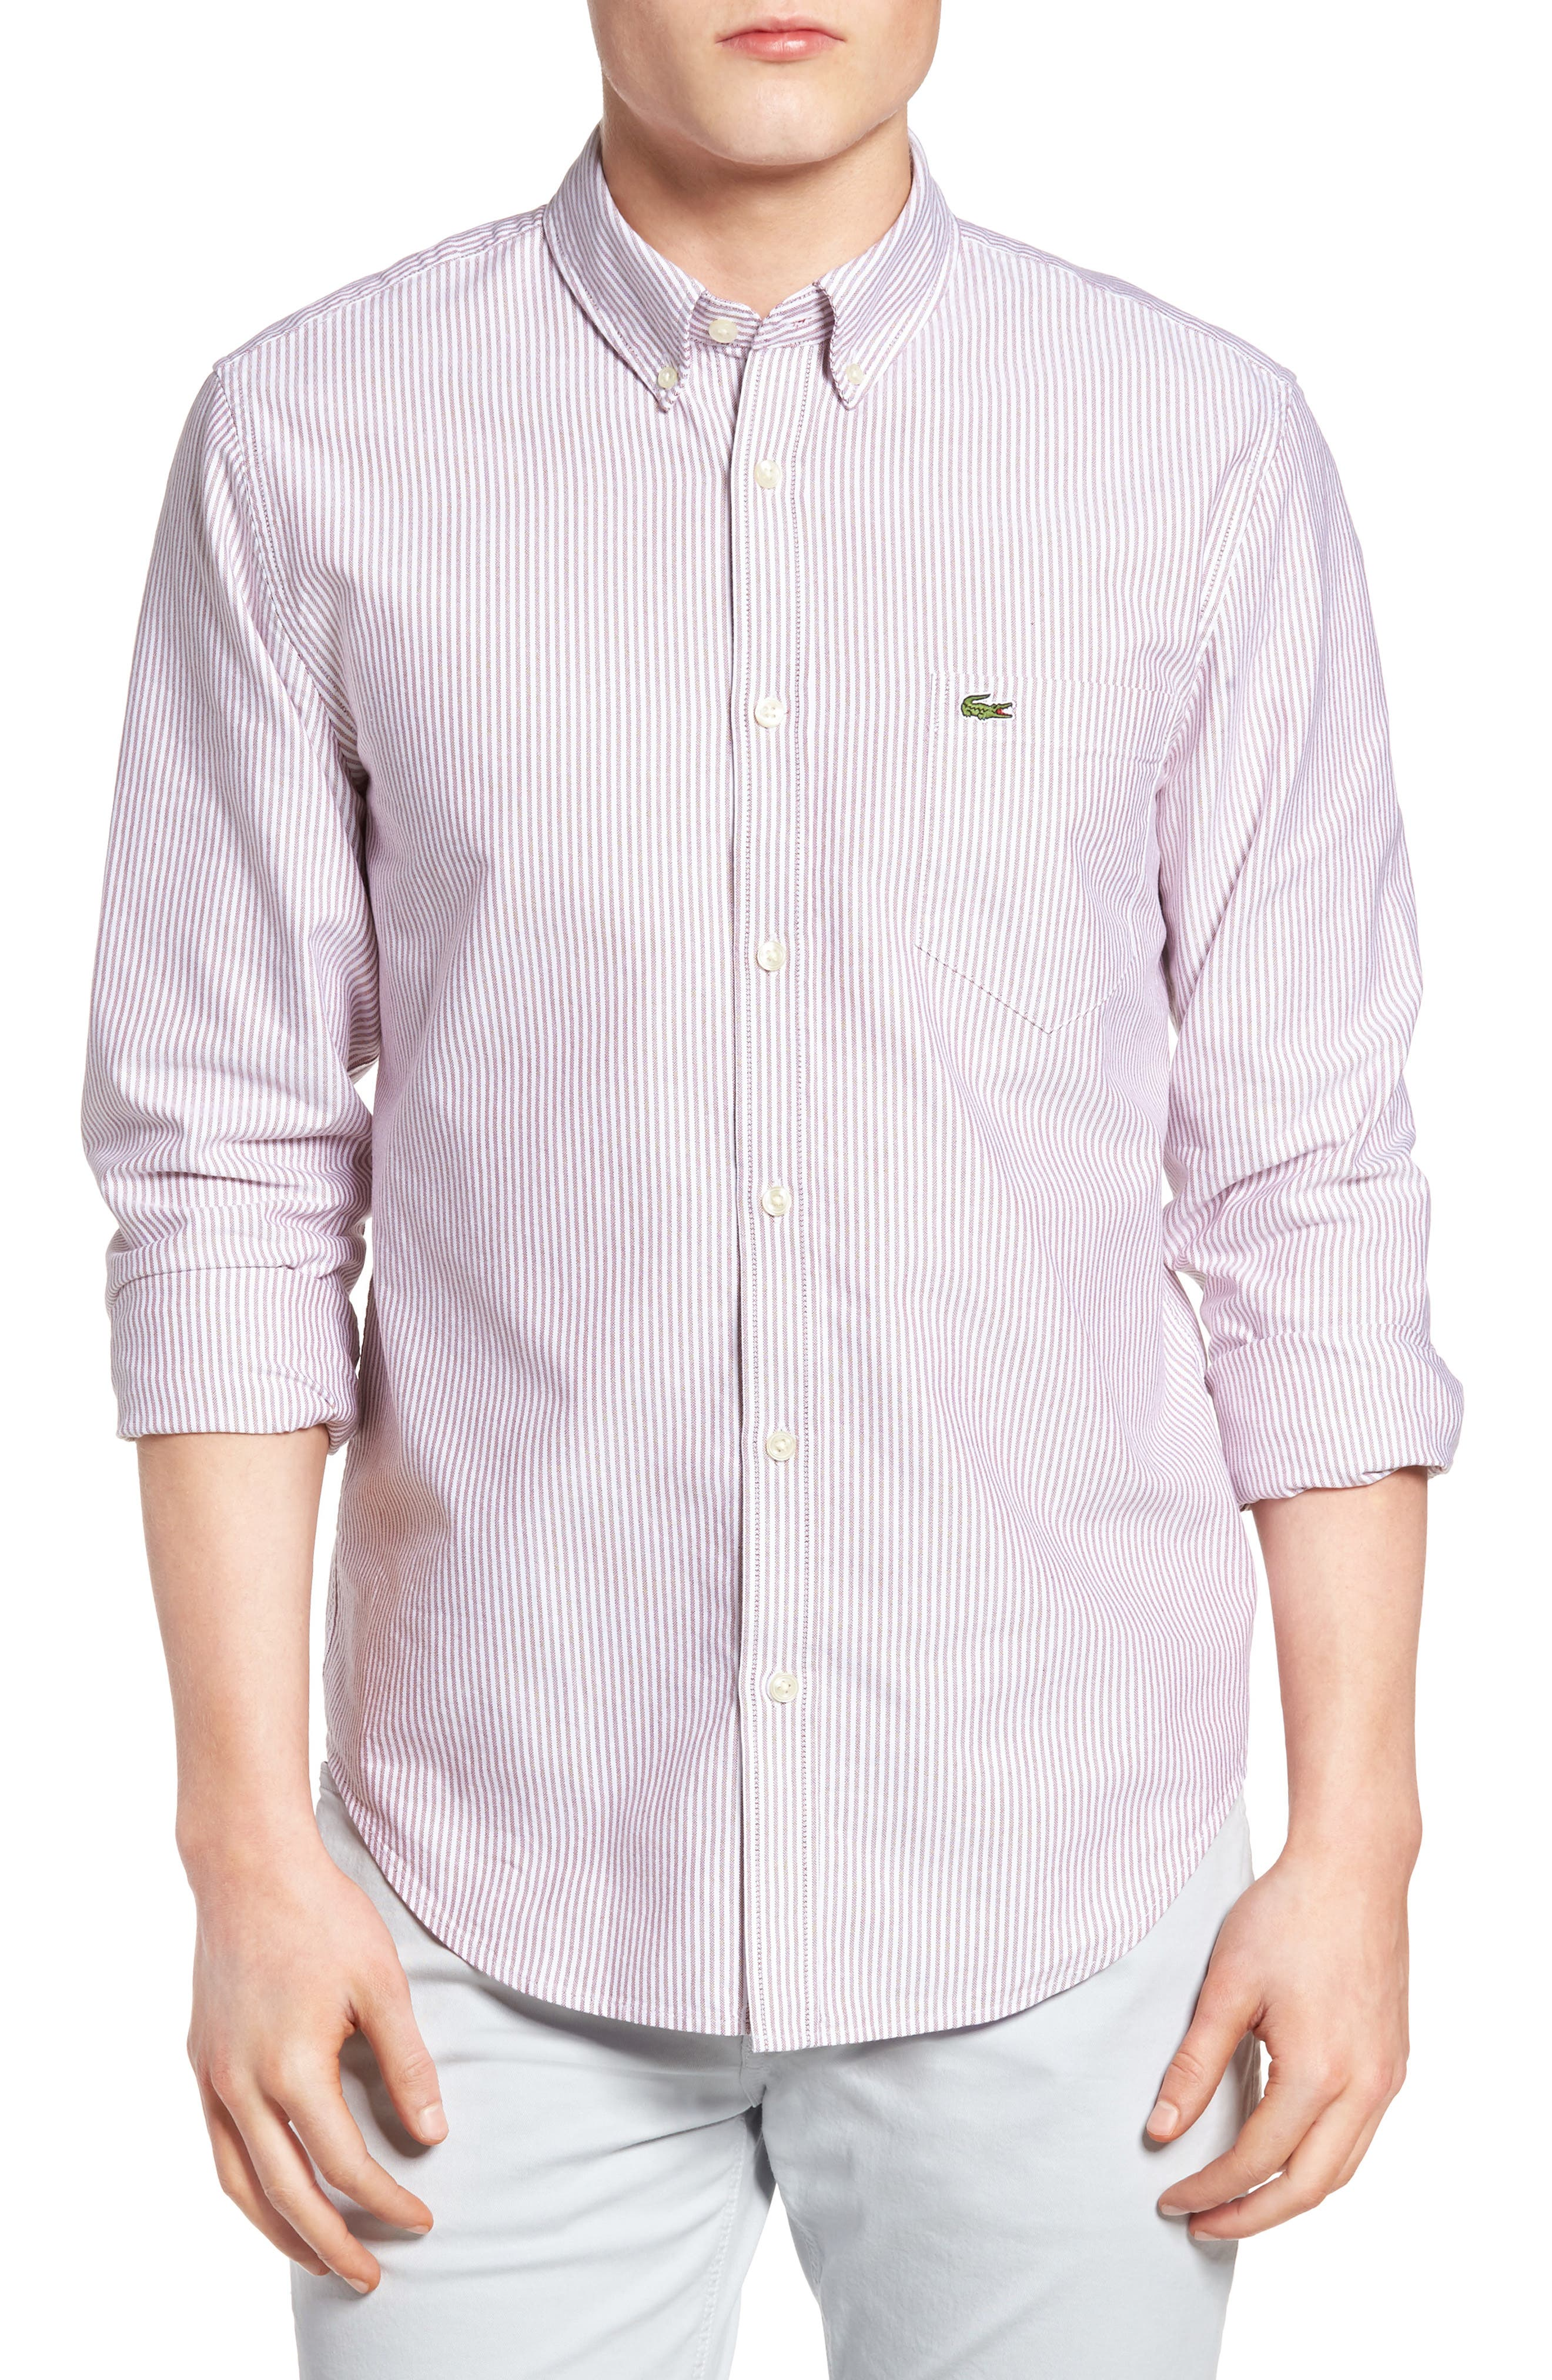 LacosteRegular Fit Bengal Stripe Oxford Woven Shirt